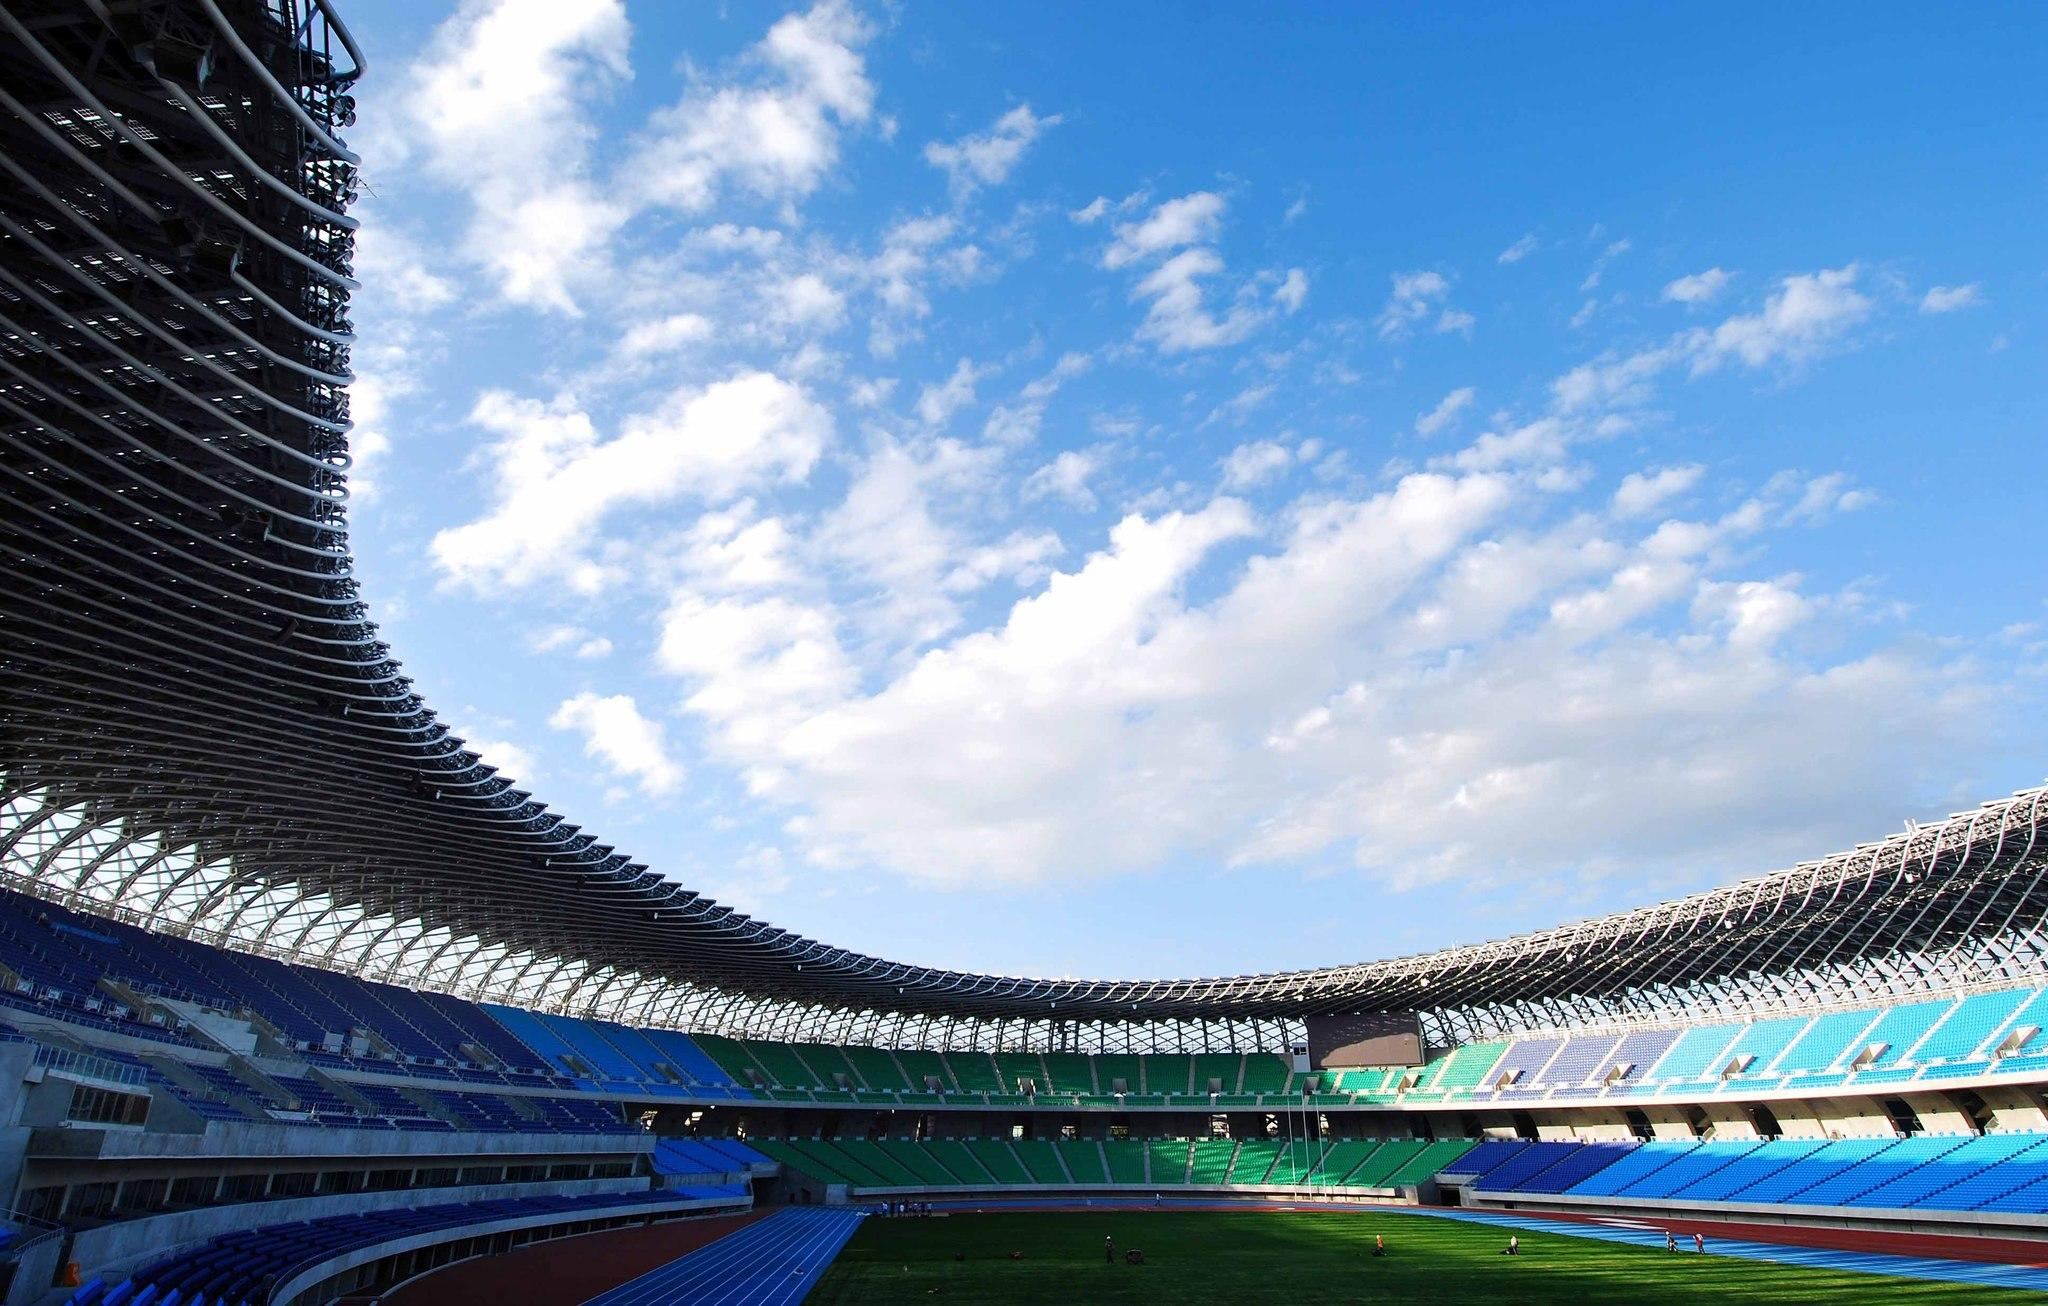 Taiwan's World Games Stadium